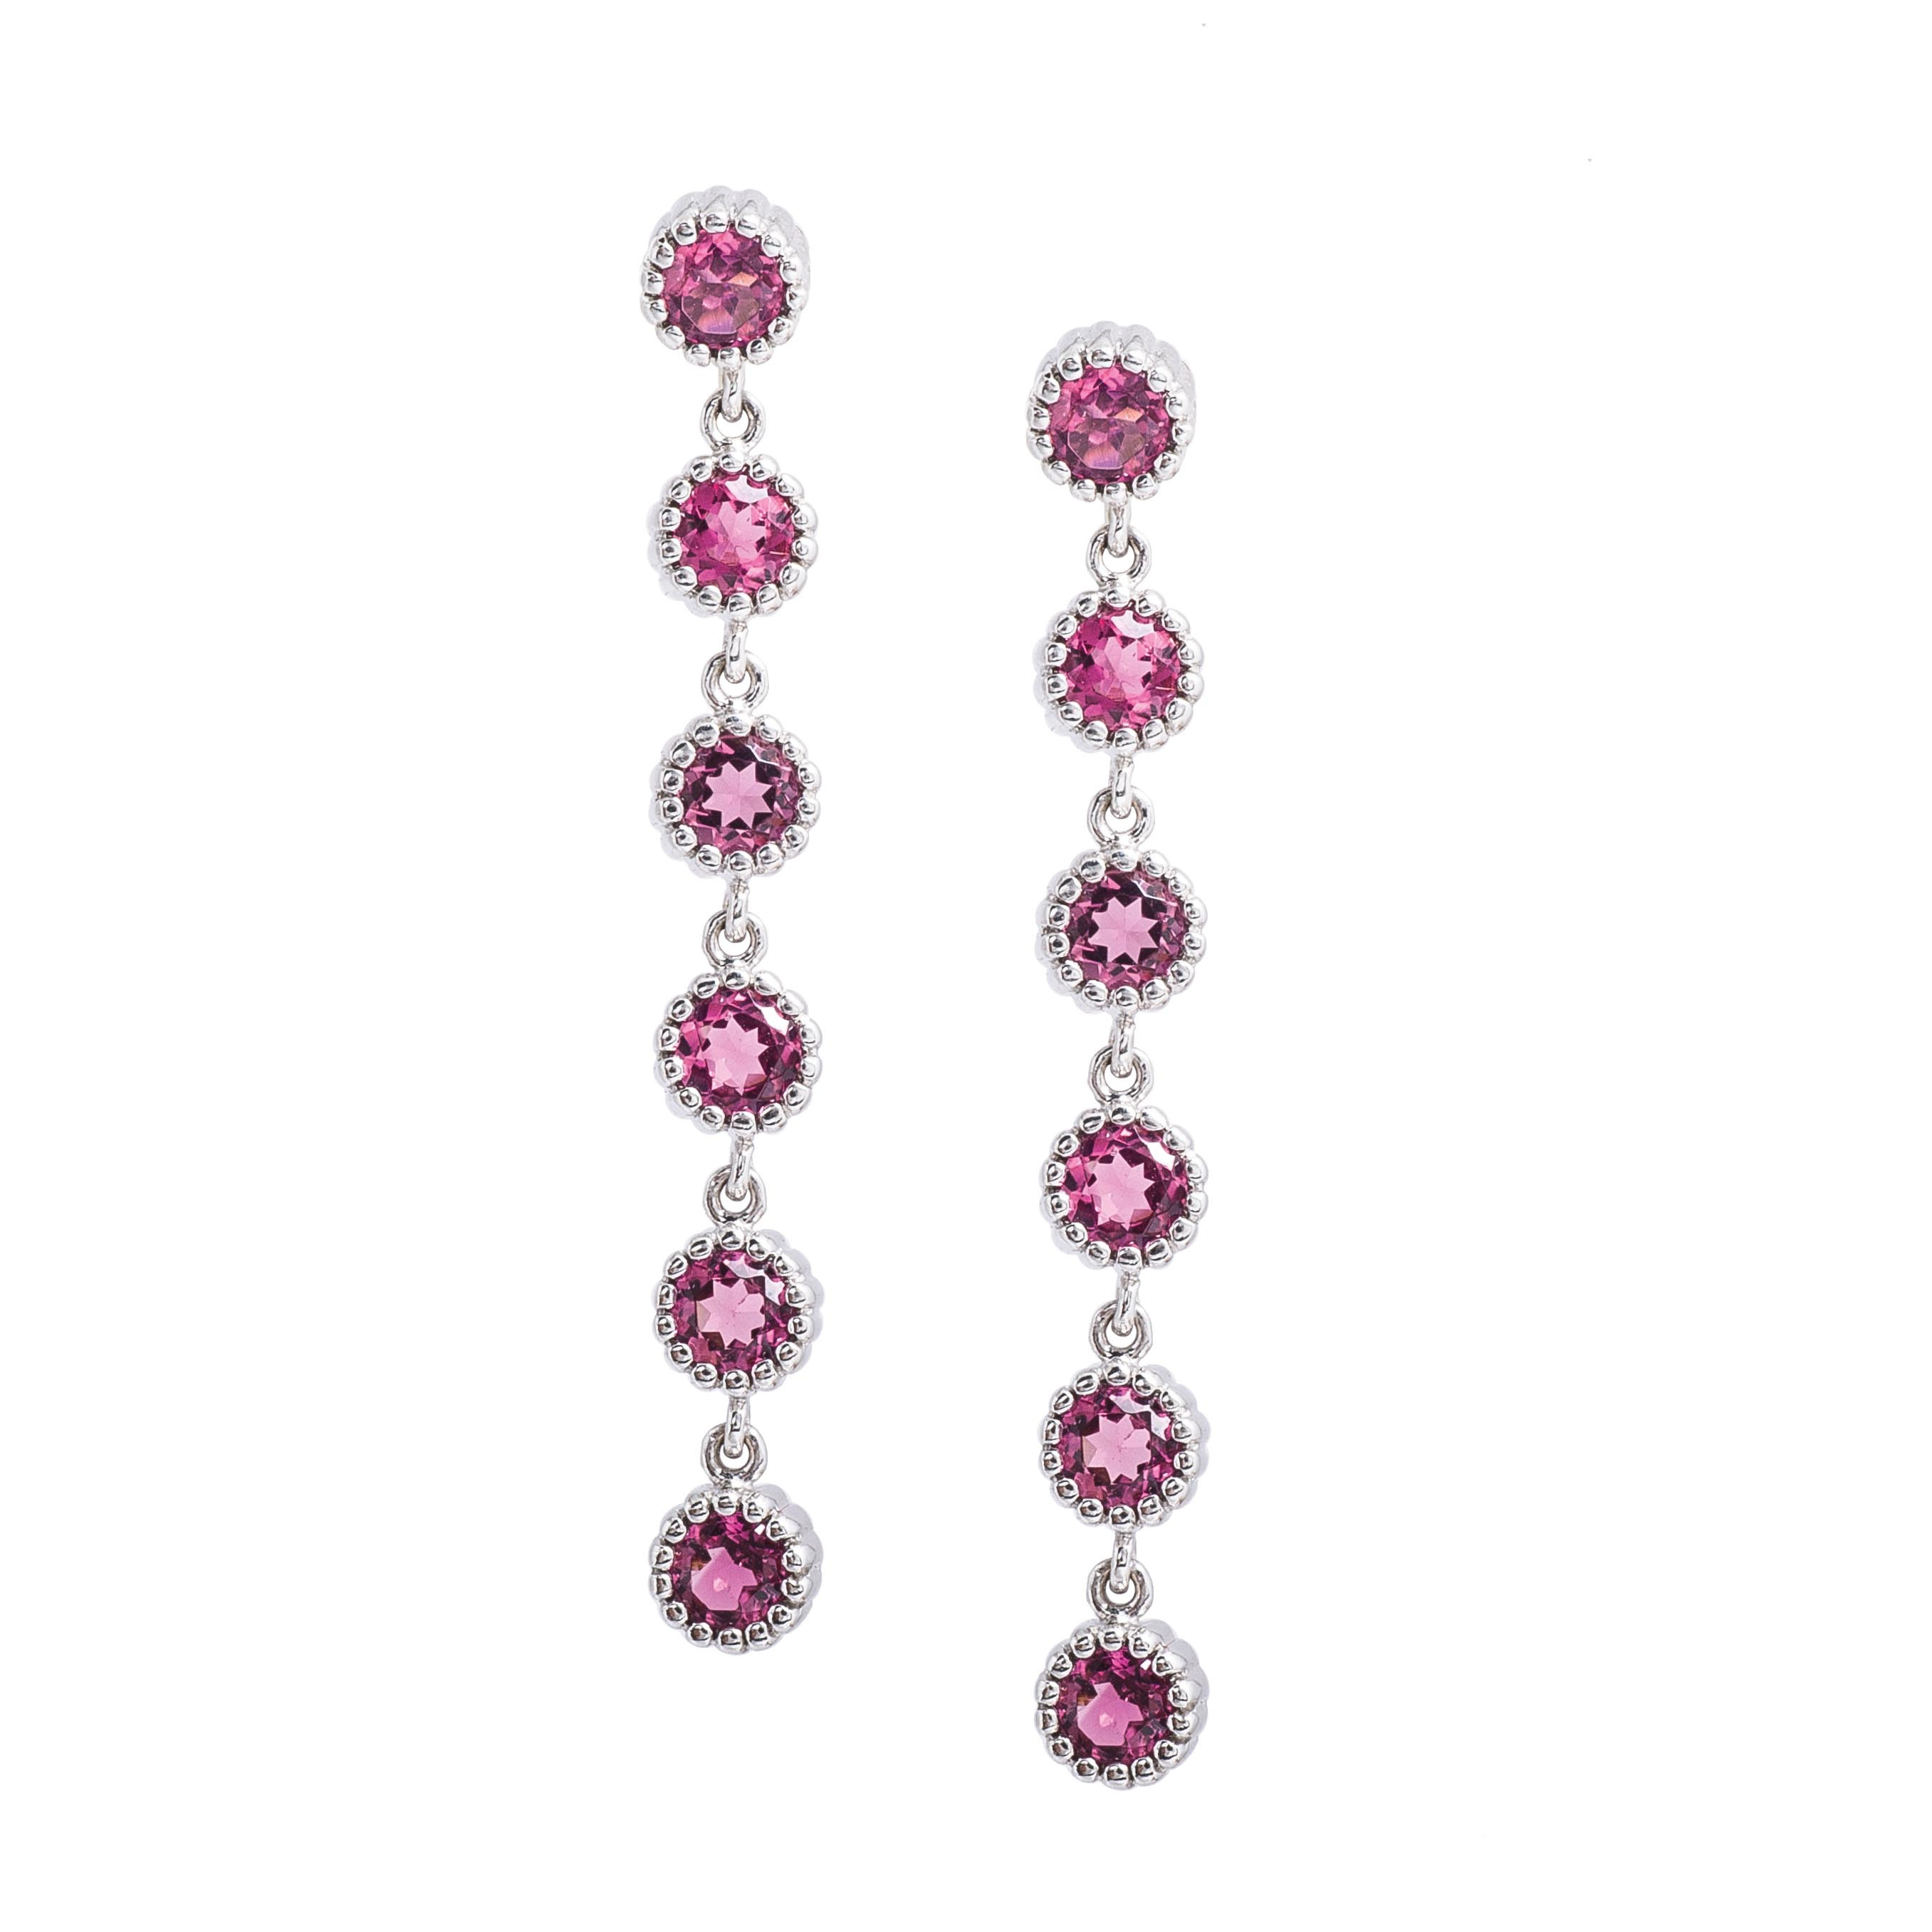 Vintage 3.15 CTW Pink Tourmaline Drop Earrings